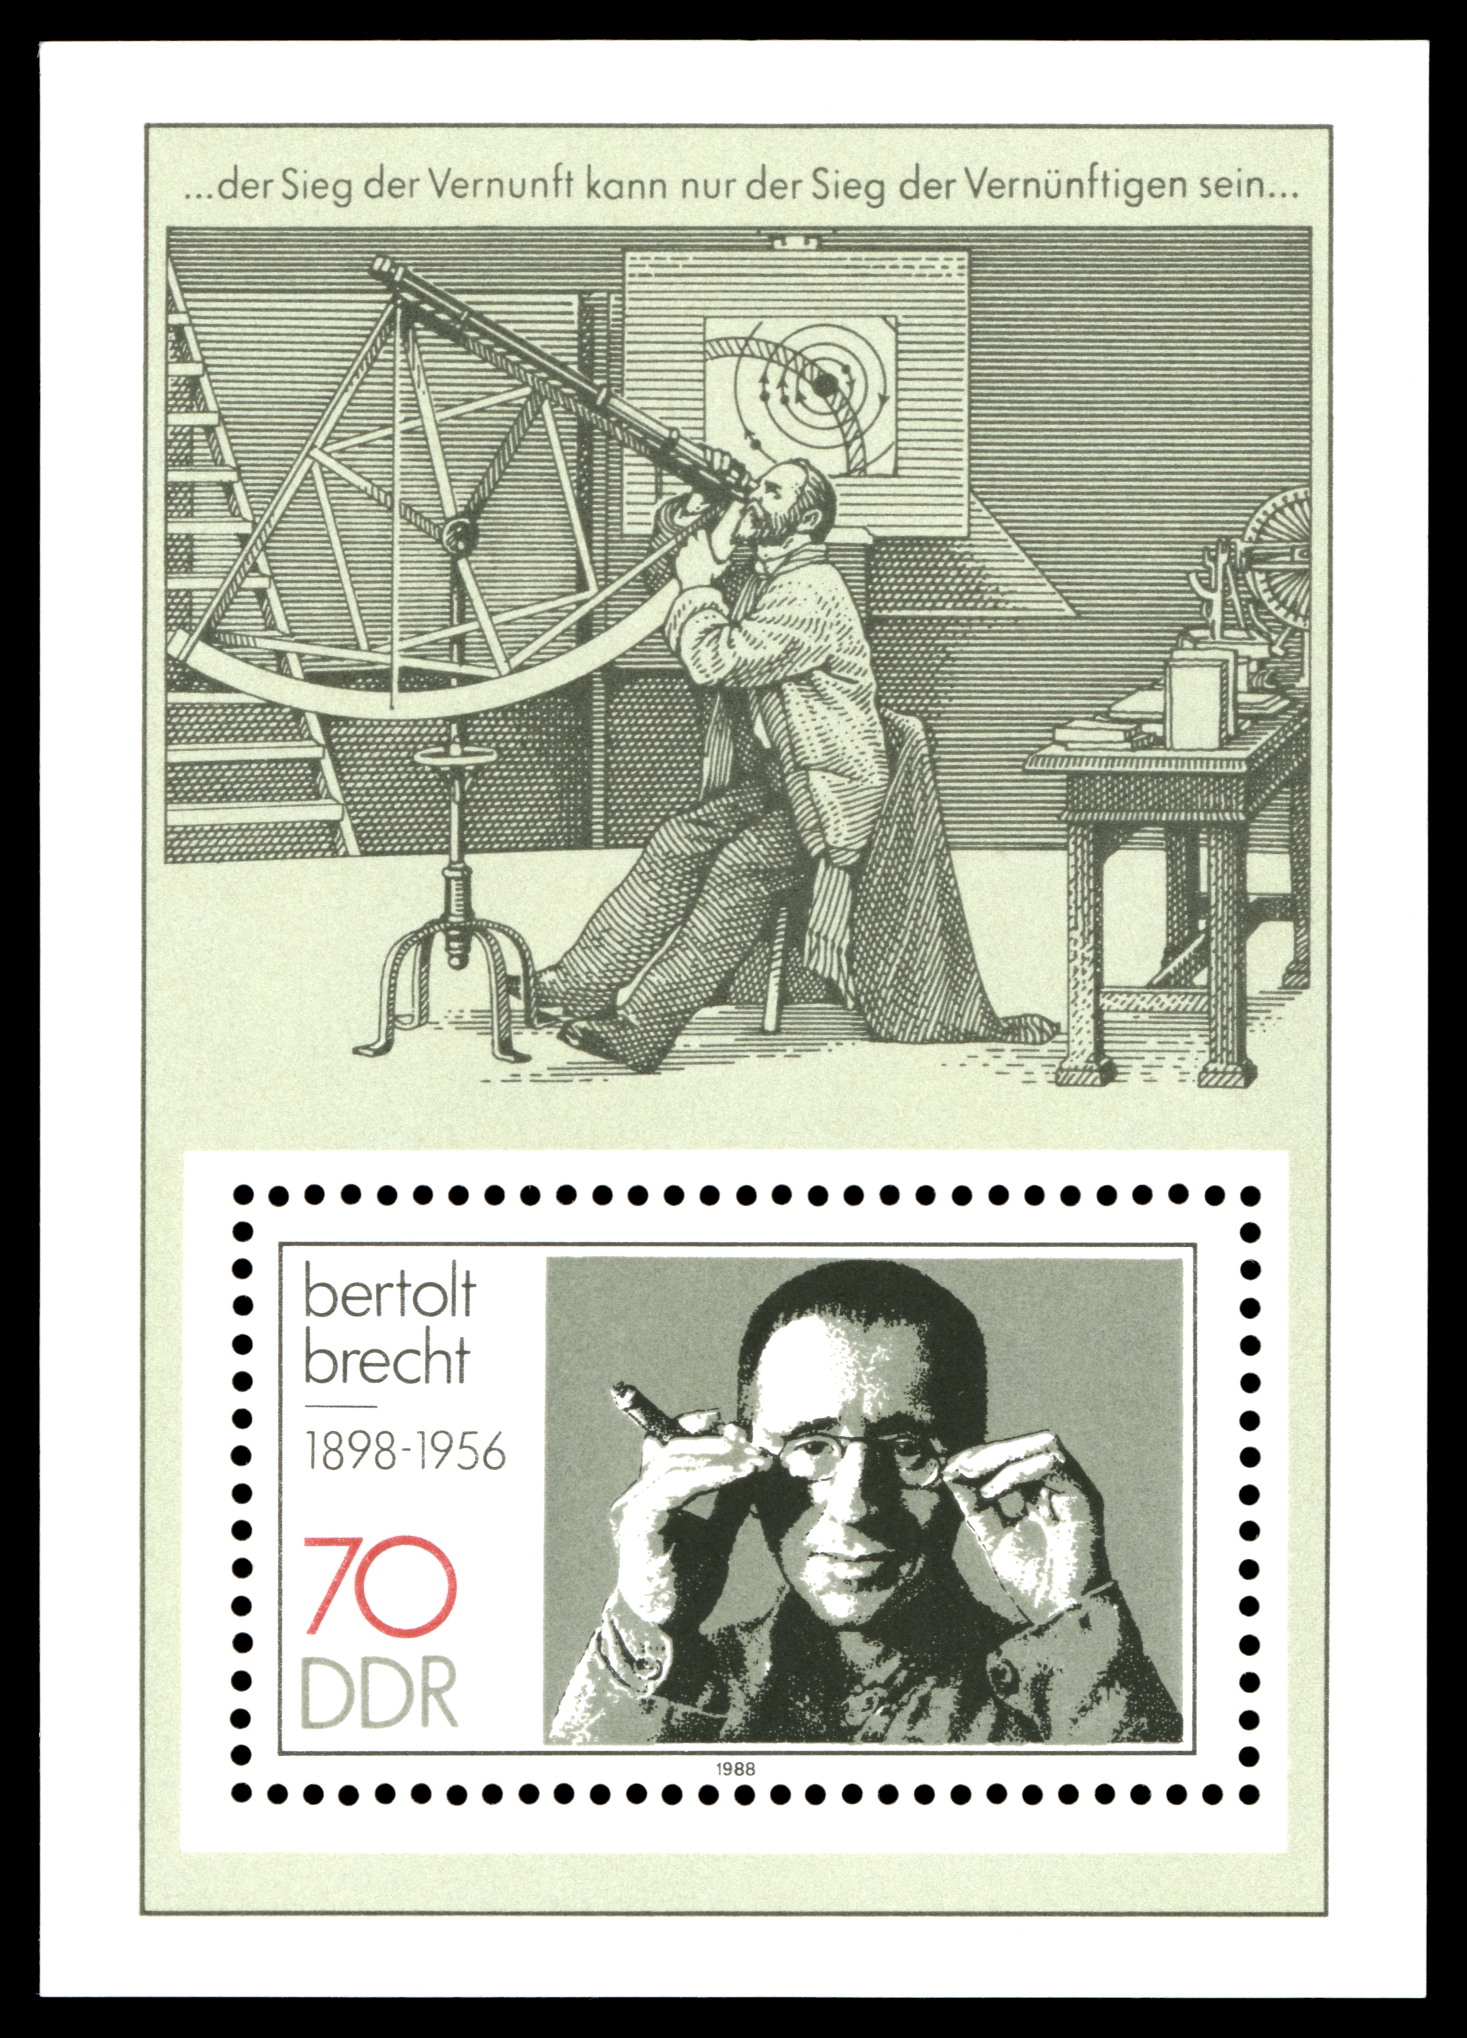 https://upload.wikimedia.org/wikipedia/commons/8/89/Stamps_of_Germany_%28DDR%29_1988%2C_MiNr_Block_091.jpg